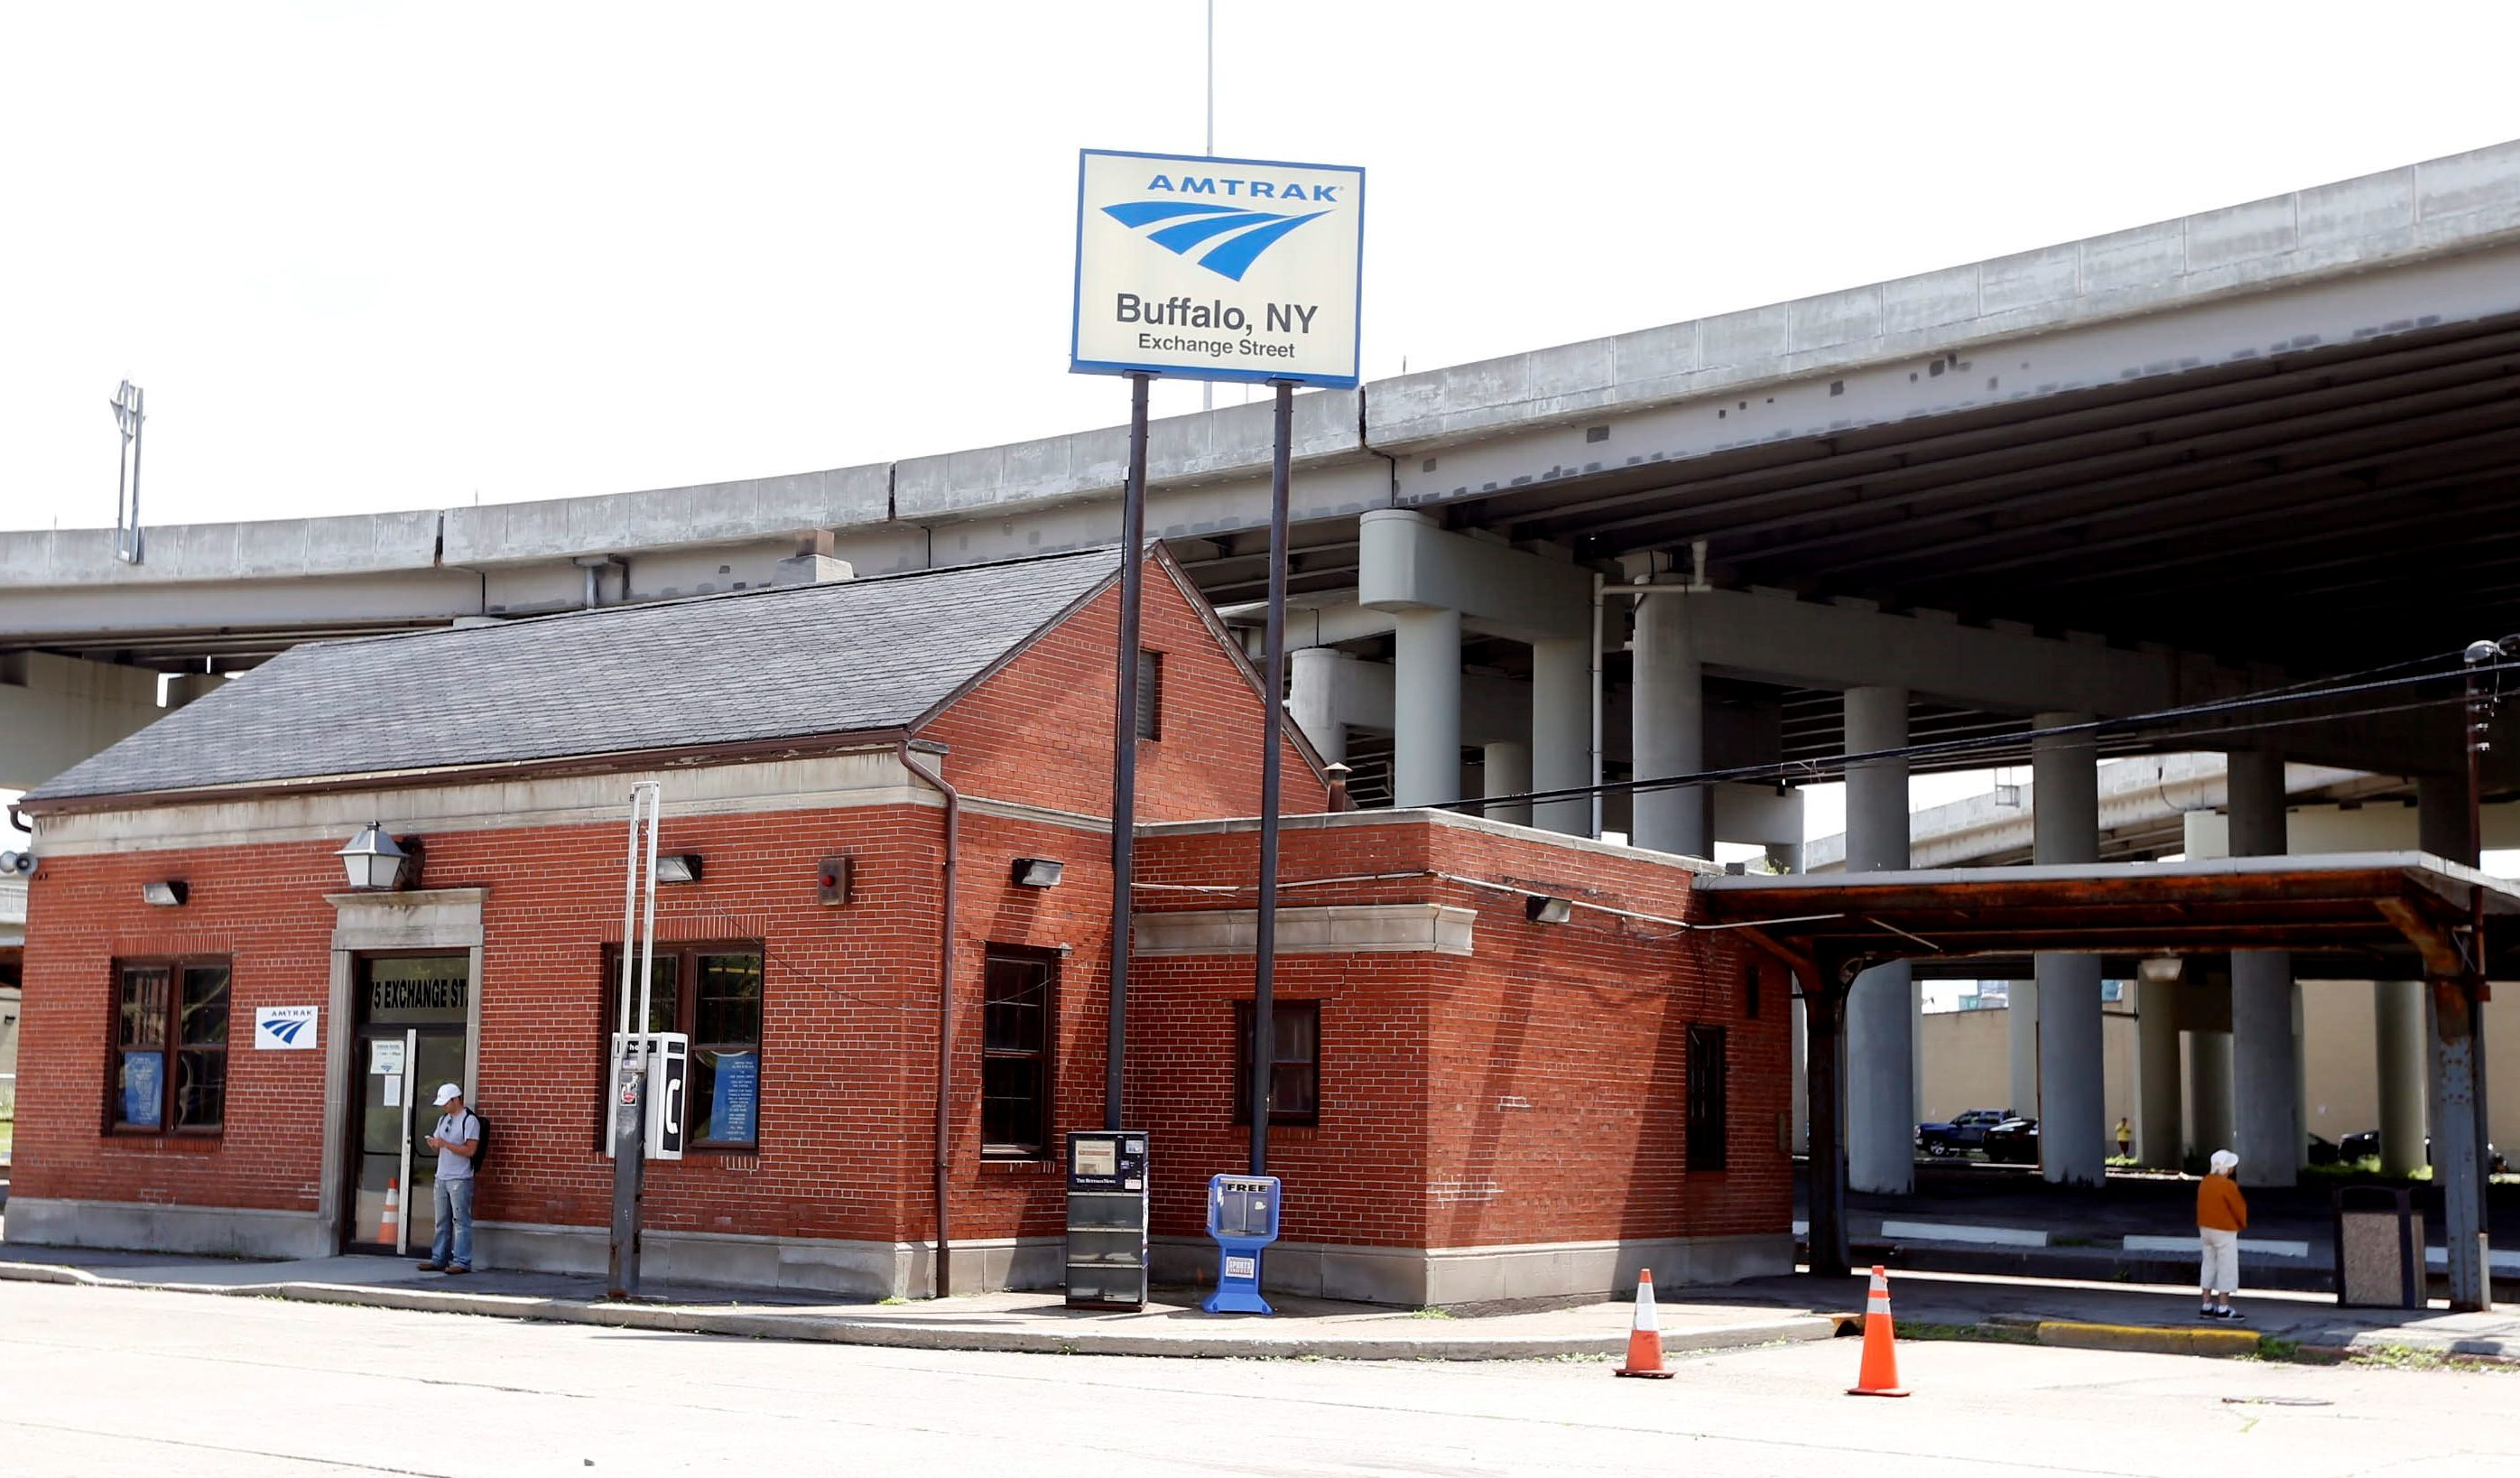 While Amtrak ridership statewide has been on a steady upswing for years, reaching 12.4 million passengers in 2016, the numbers at Buffalo's Exchange Street station went from 40,809 in 2014 to 41,216 in 2015 before dropping to 37,524 in 2016. (Robert Kirkham/News file photo)